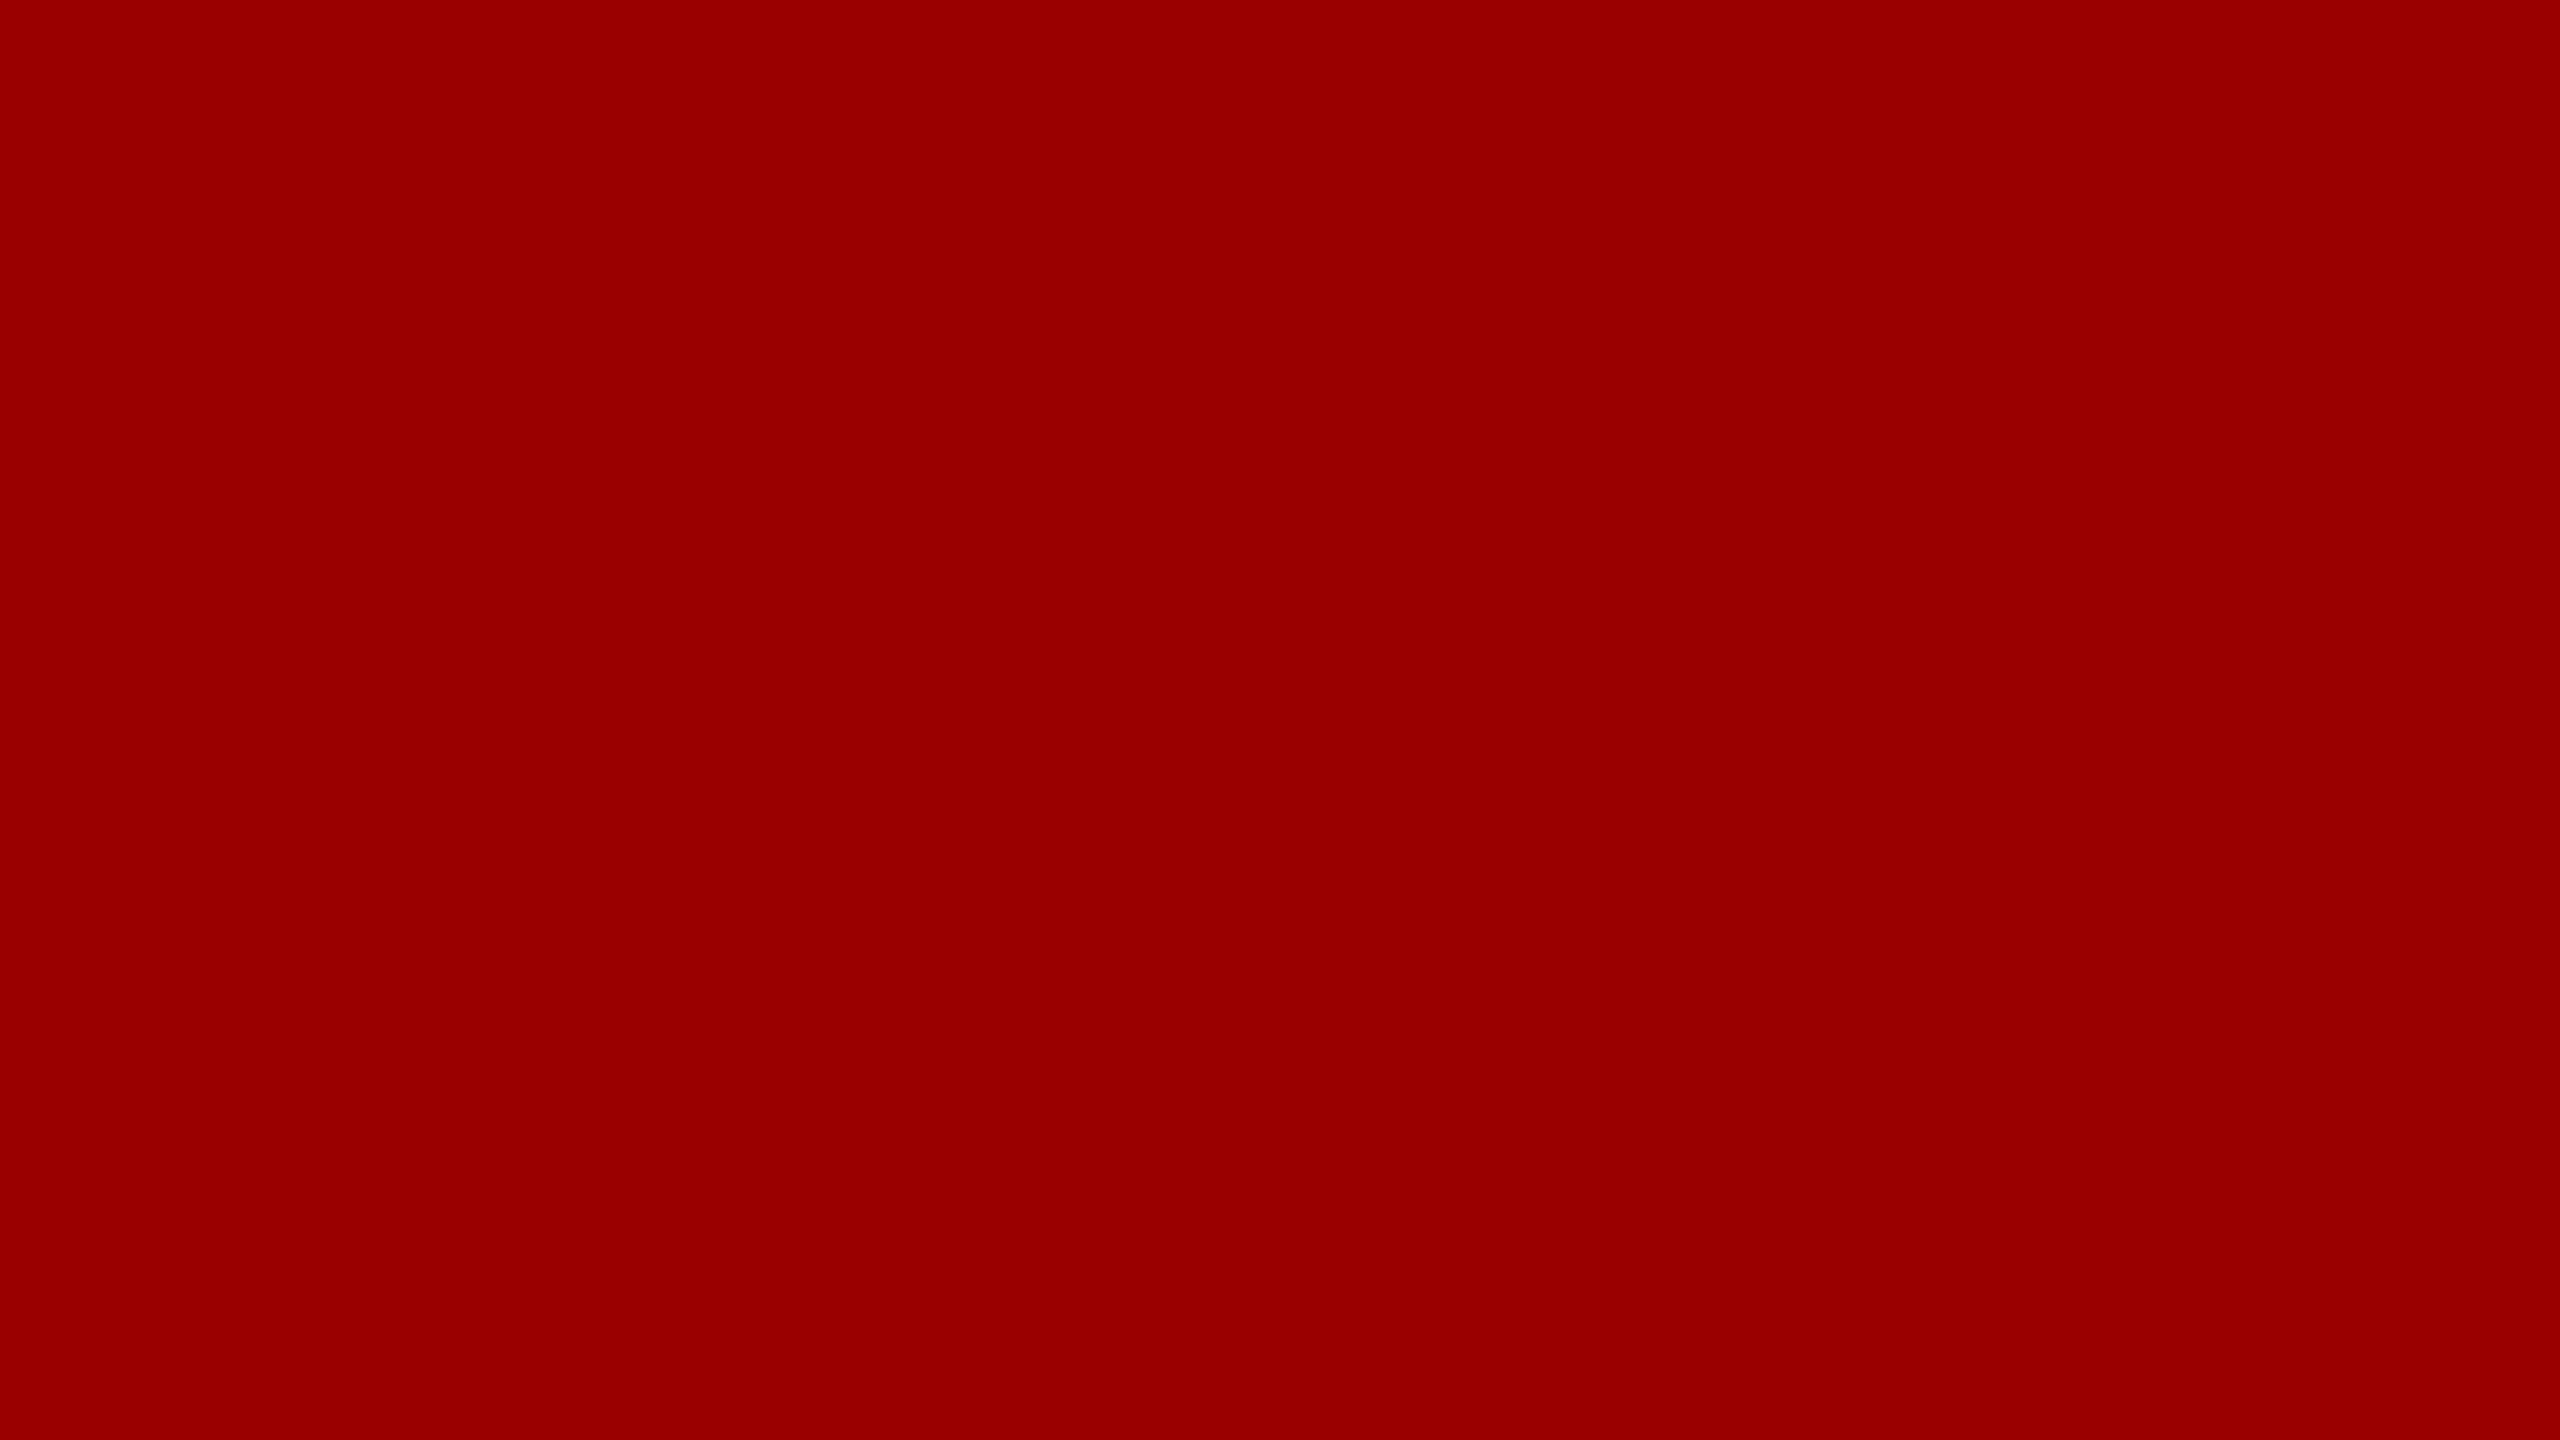 2560x1440 OU Crimson Red Solid Color Background